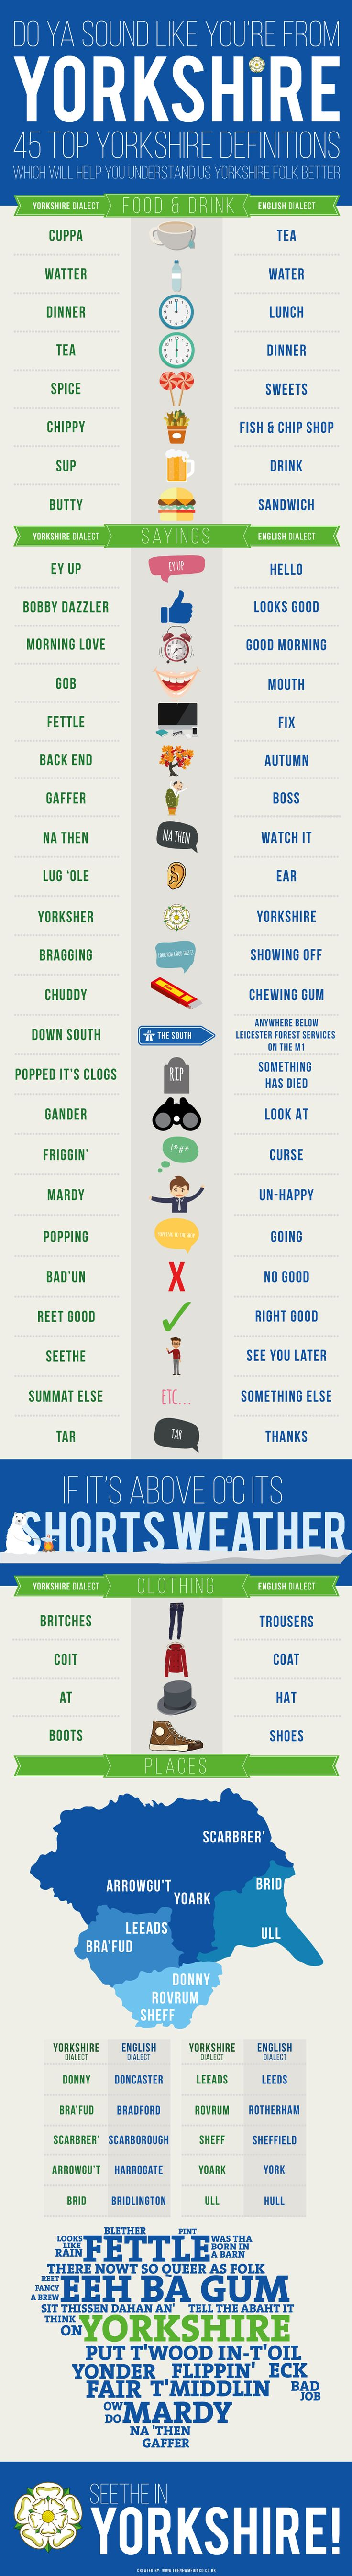 Do Ya Sound Like You're From Yorkshire? #infographic #Yorkshire #Language…